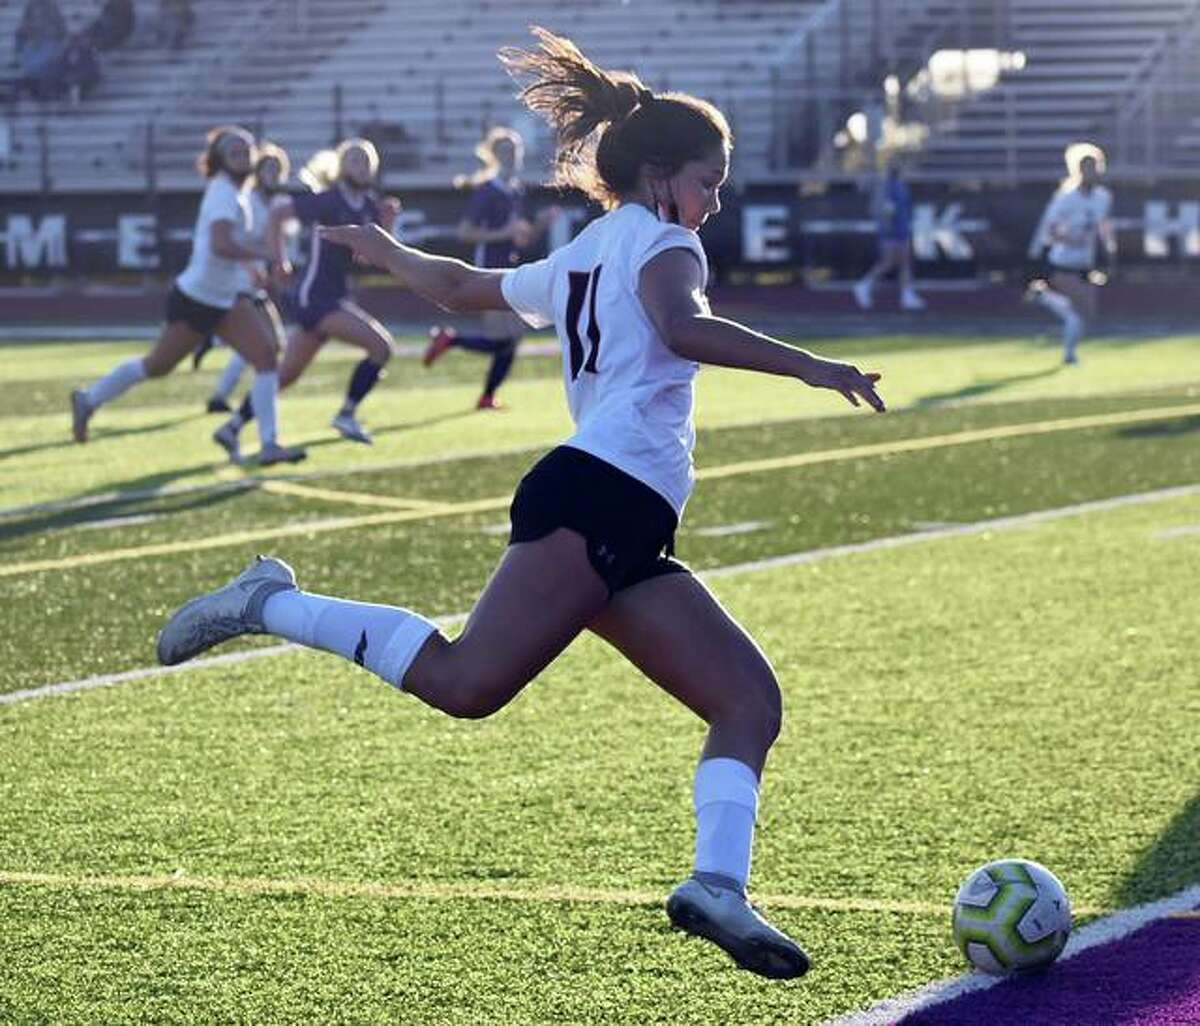 Edwardsville's Olivia Baca drills a shot just wide of the goal in the first half against Collinsville on Thursday in Collinsville.